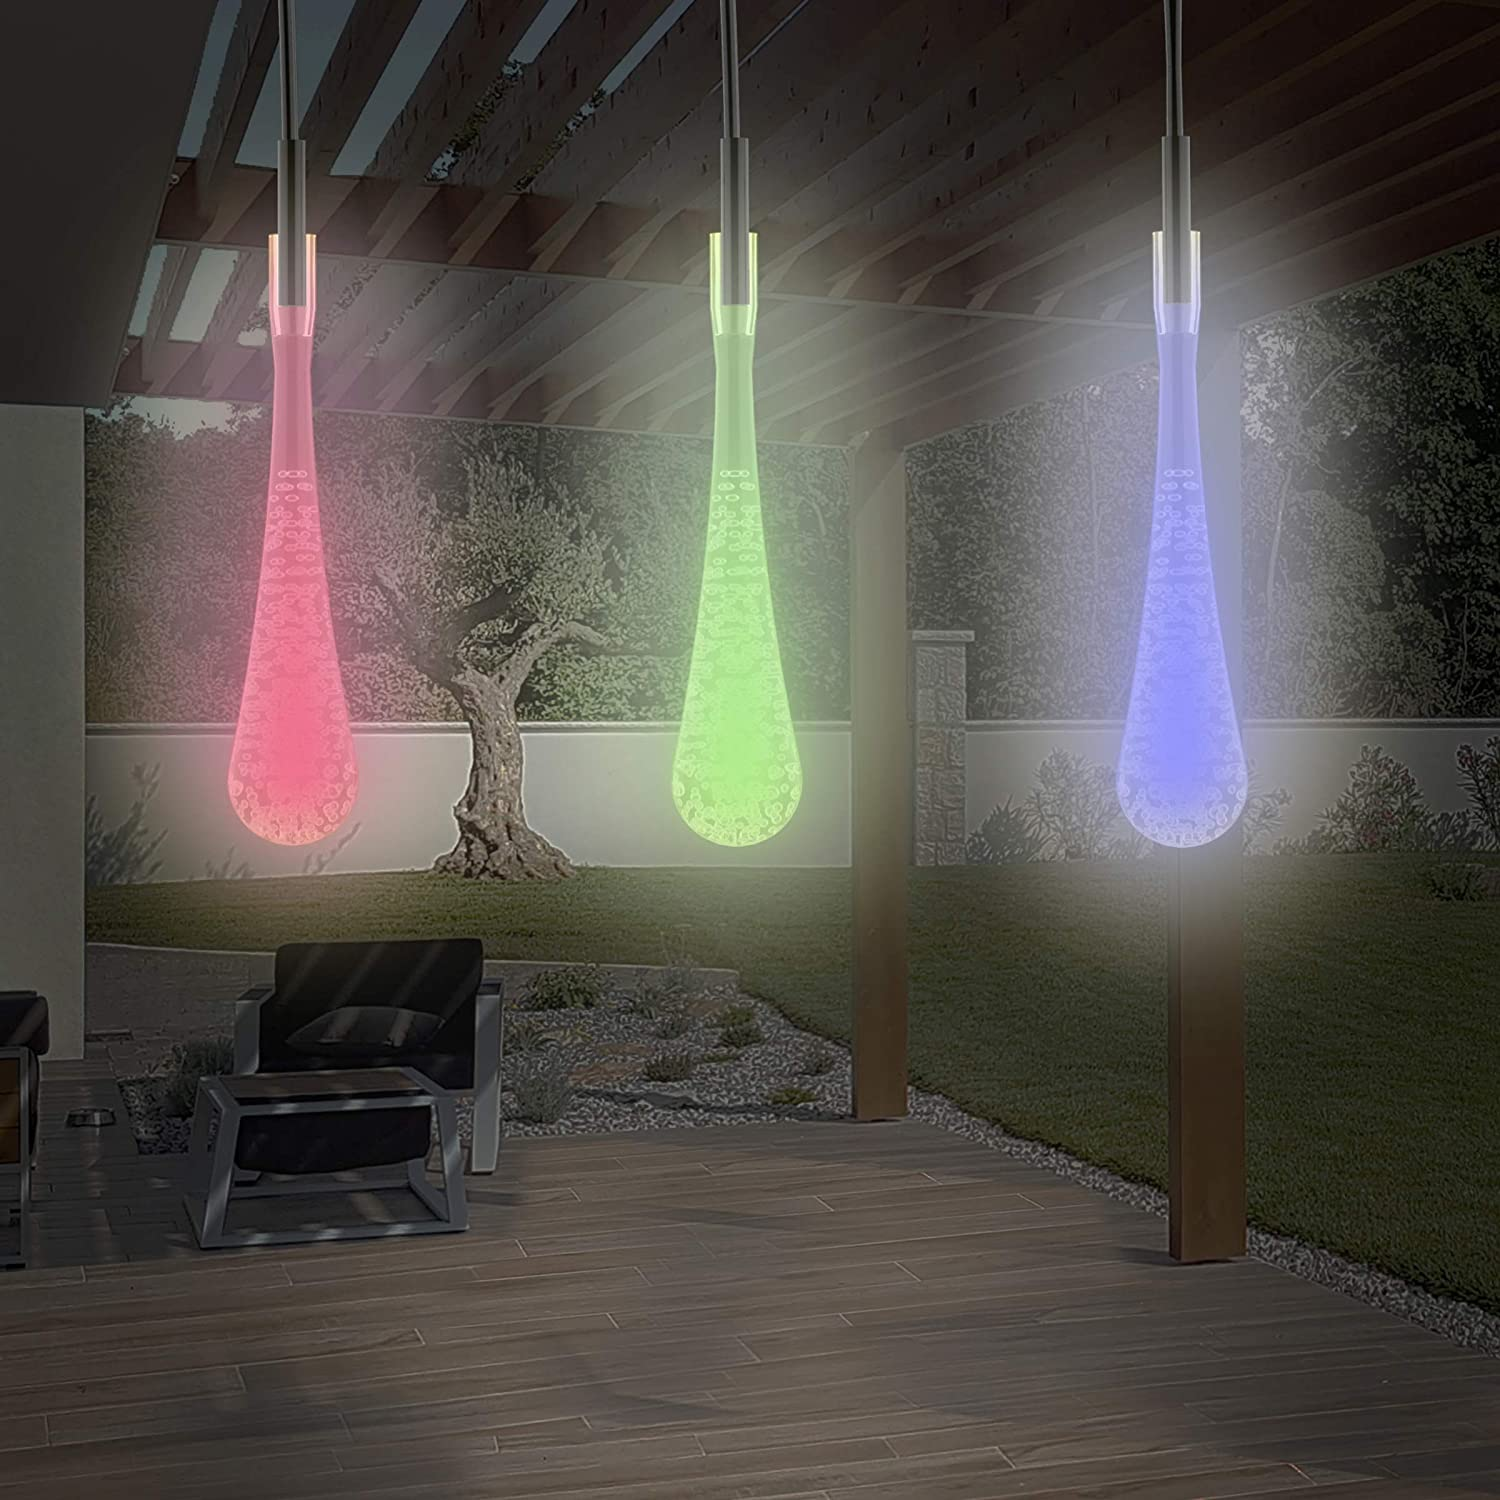 Pure Garden 50-LG1016 String Set of 2 30 Bulb Solar Power Outdoor LED Decor Tear Drop Lighting with 8 Modes and Rechargeable Battery (Multi-Color)